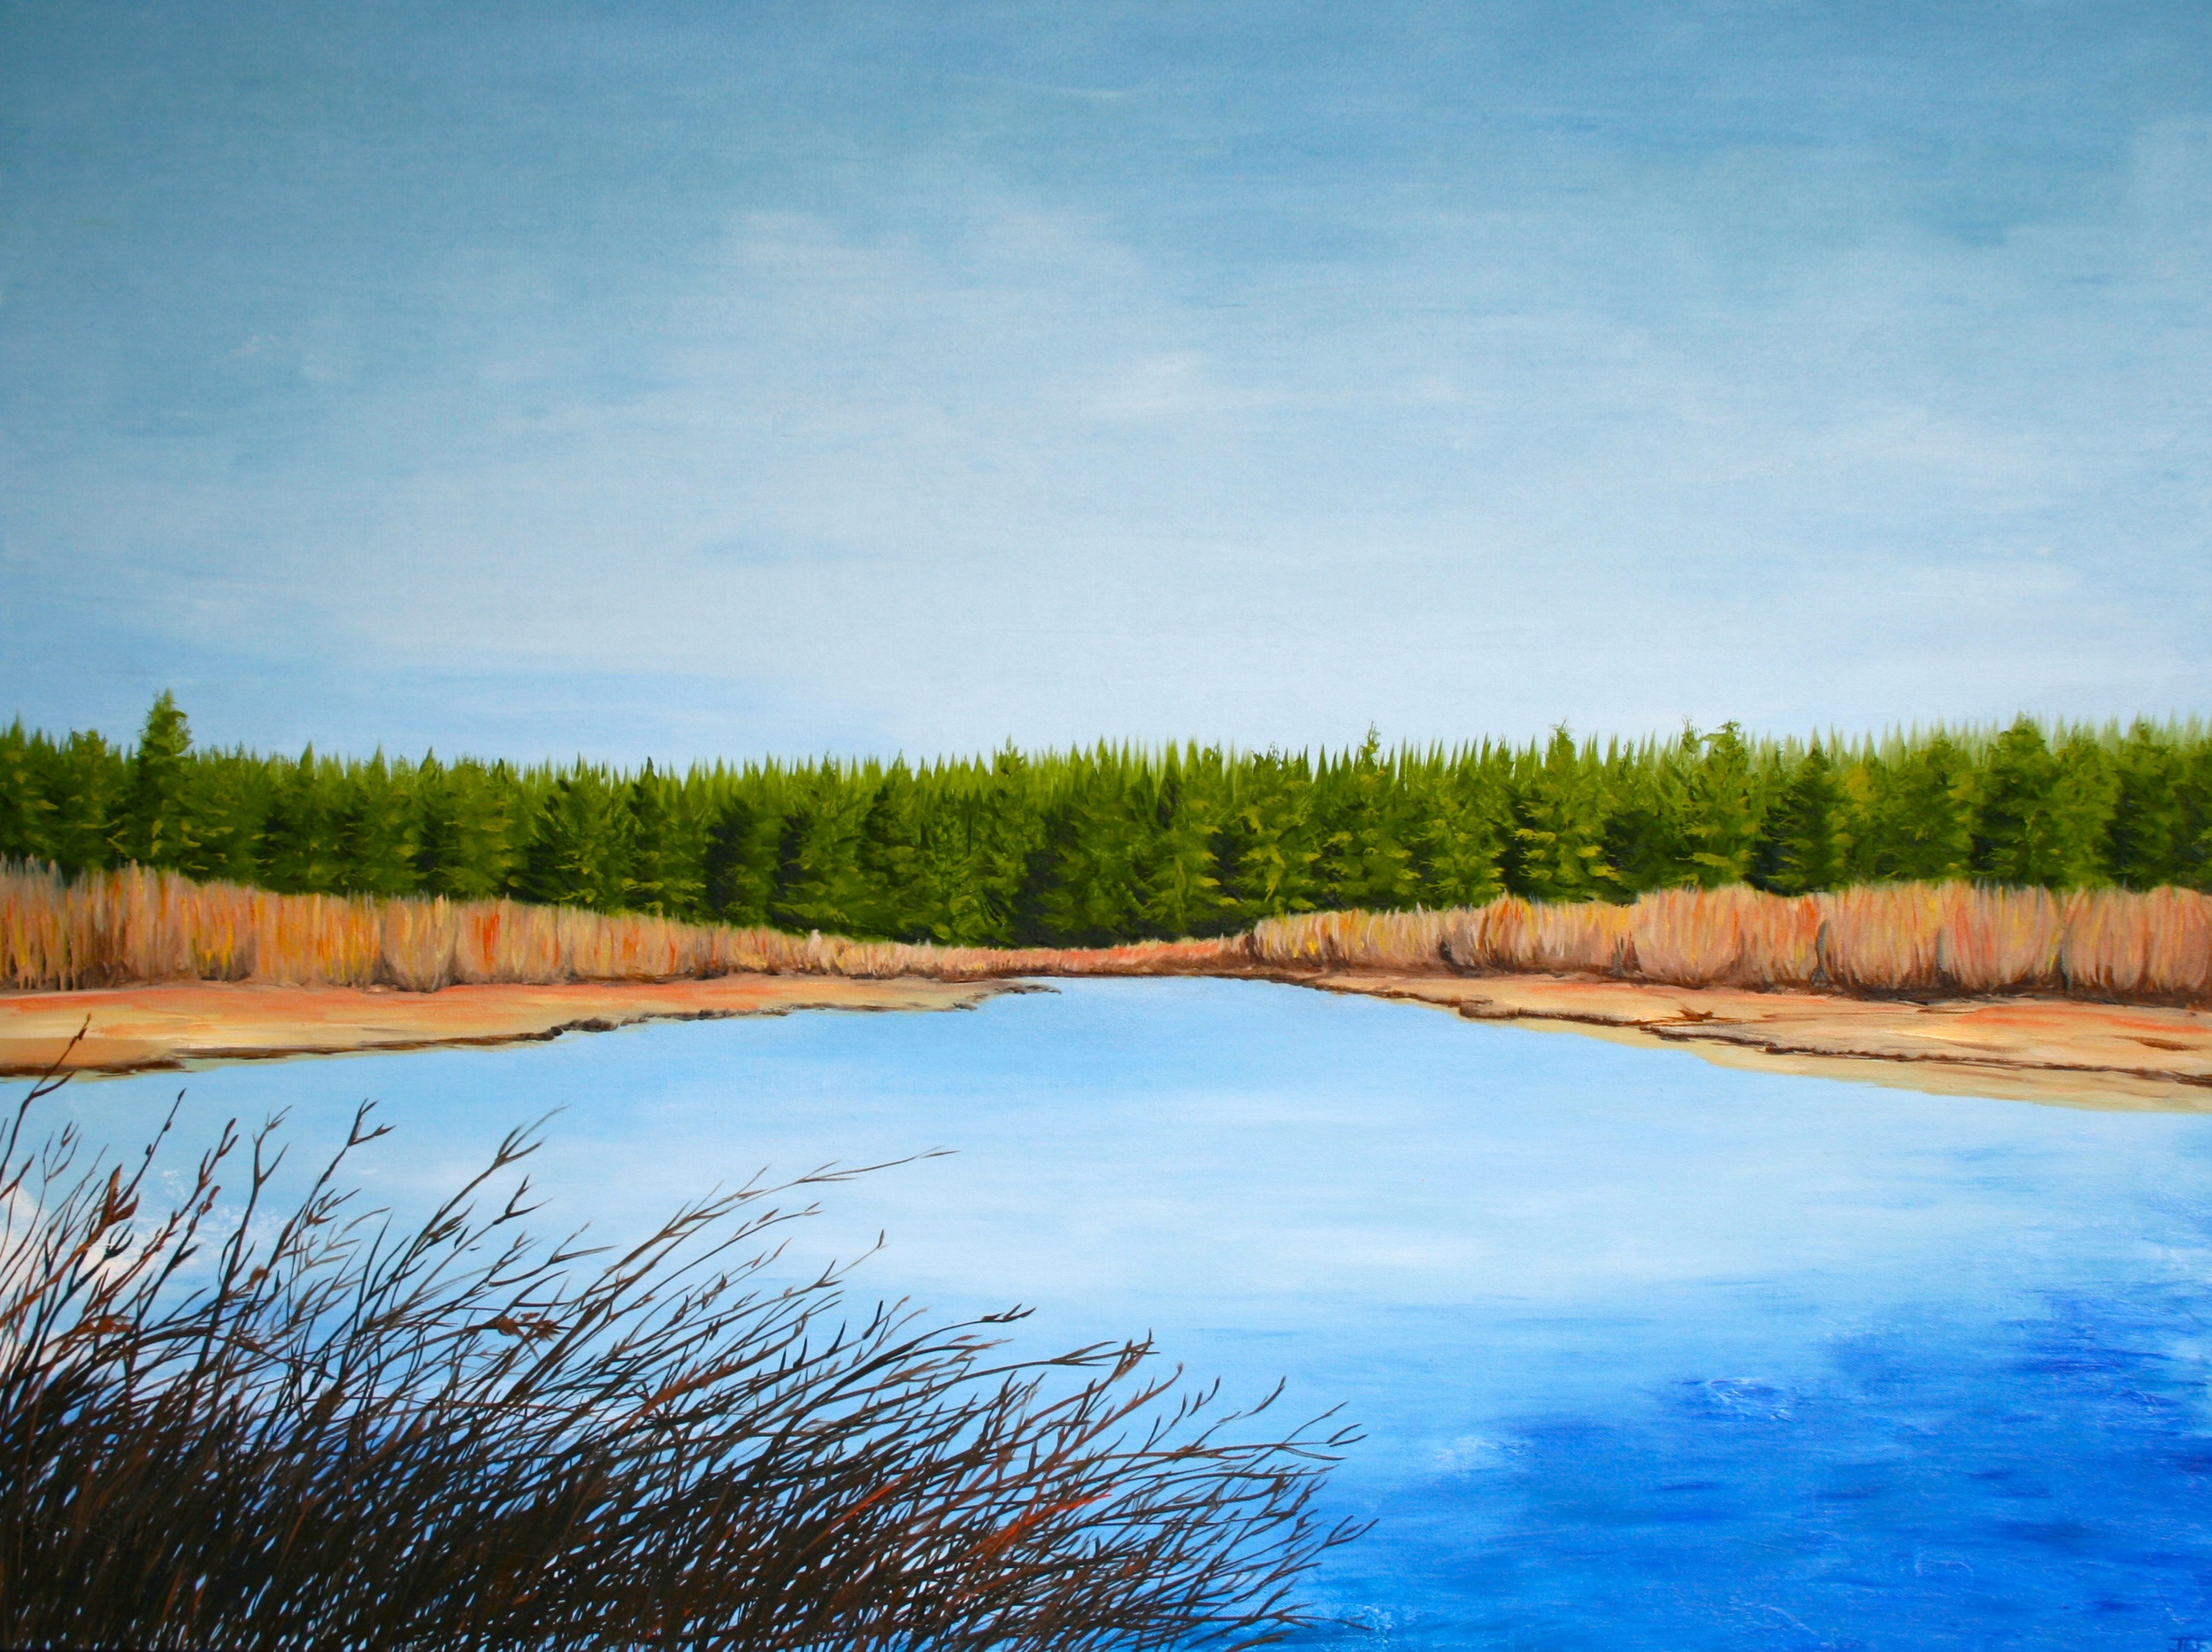 River Slows. Oil on canvas. 40 x 30. 2012.